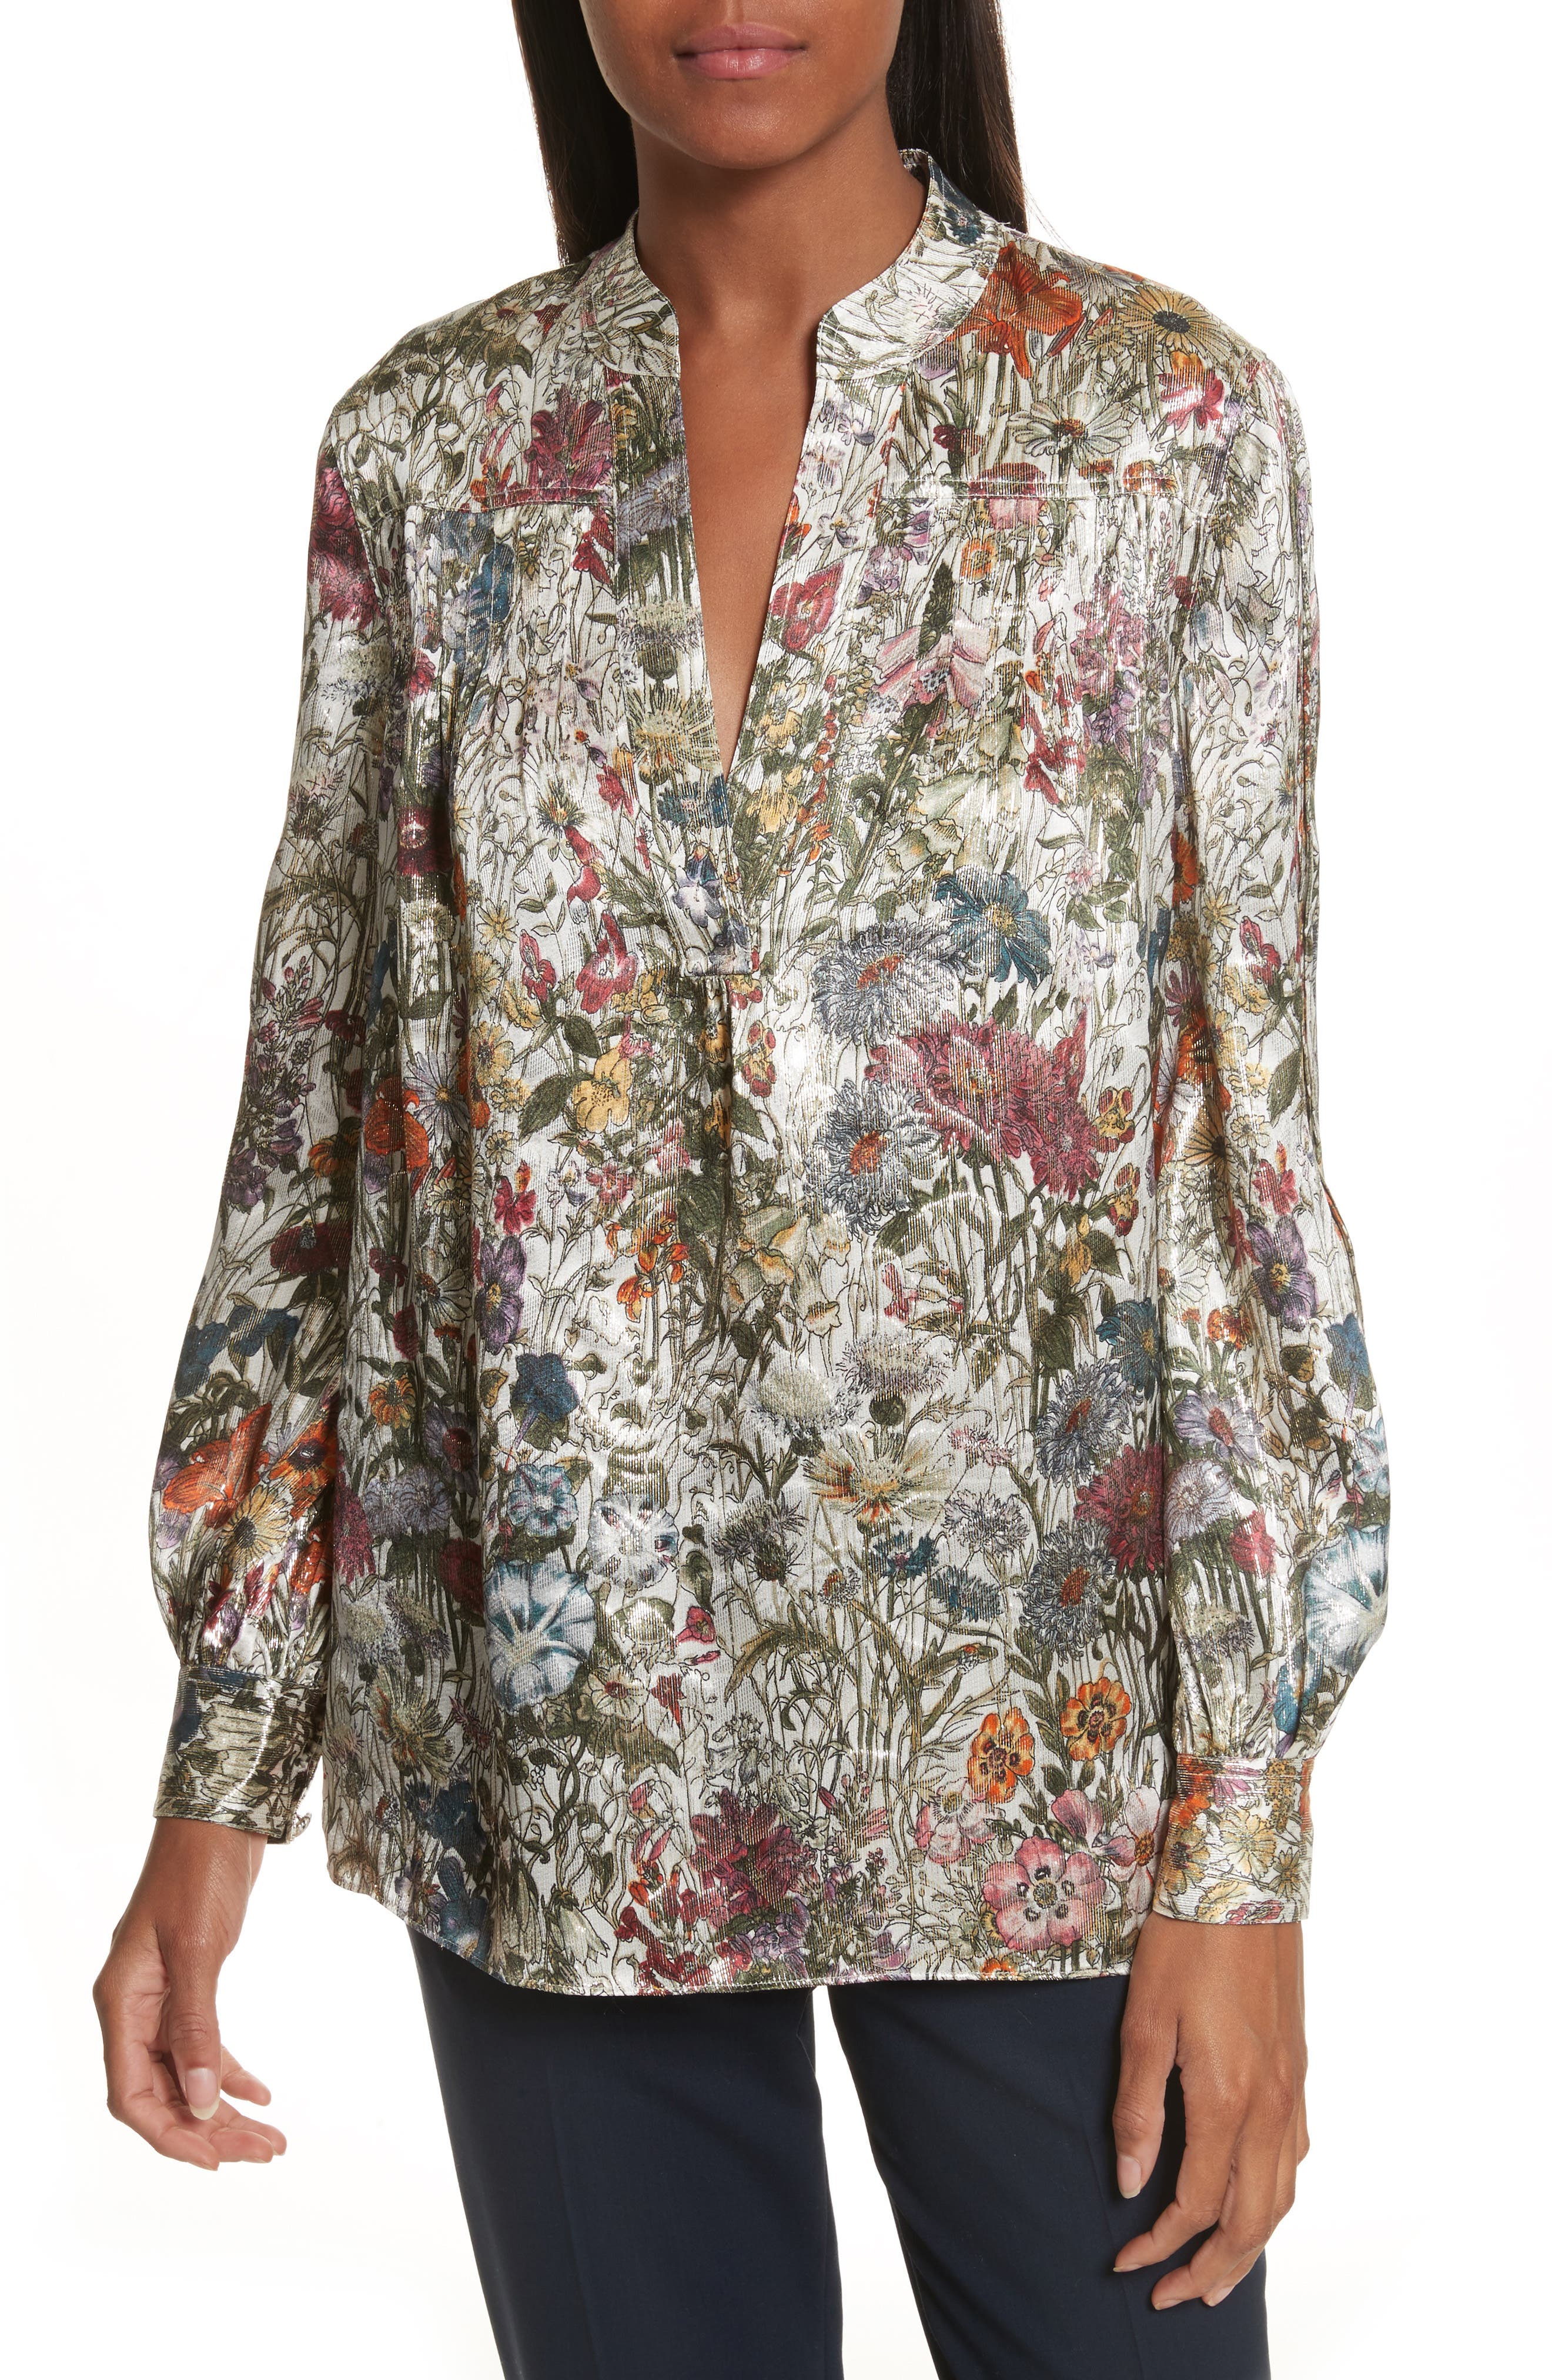 Tory Burch Heidi Metallic Floral Blouse